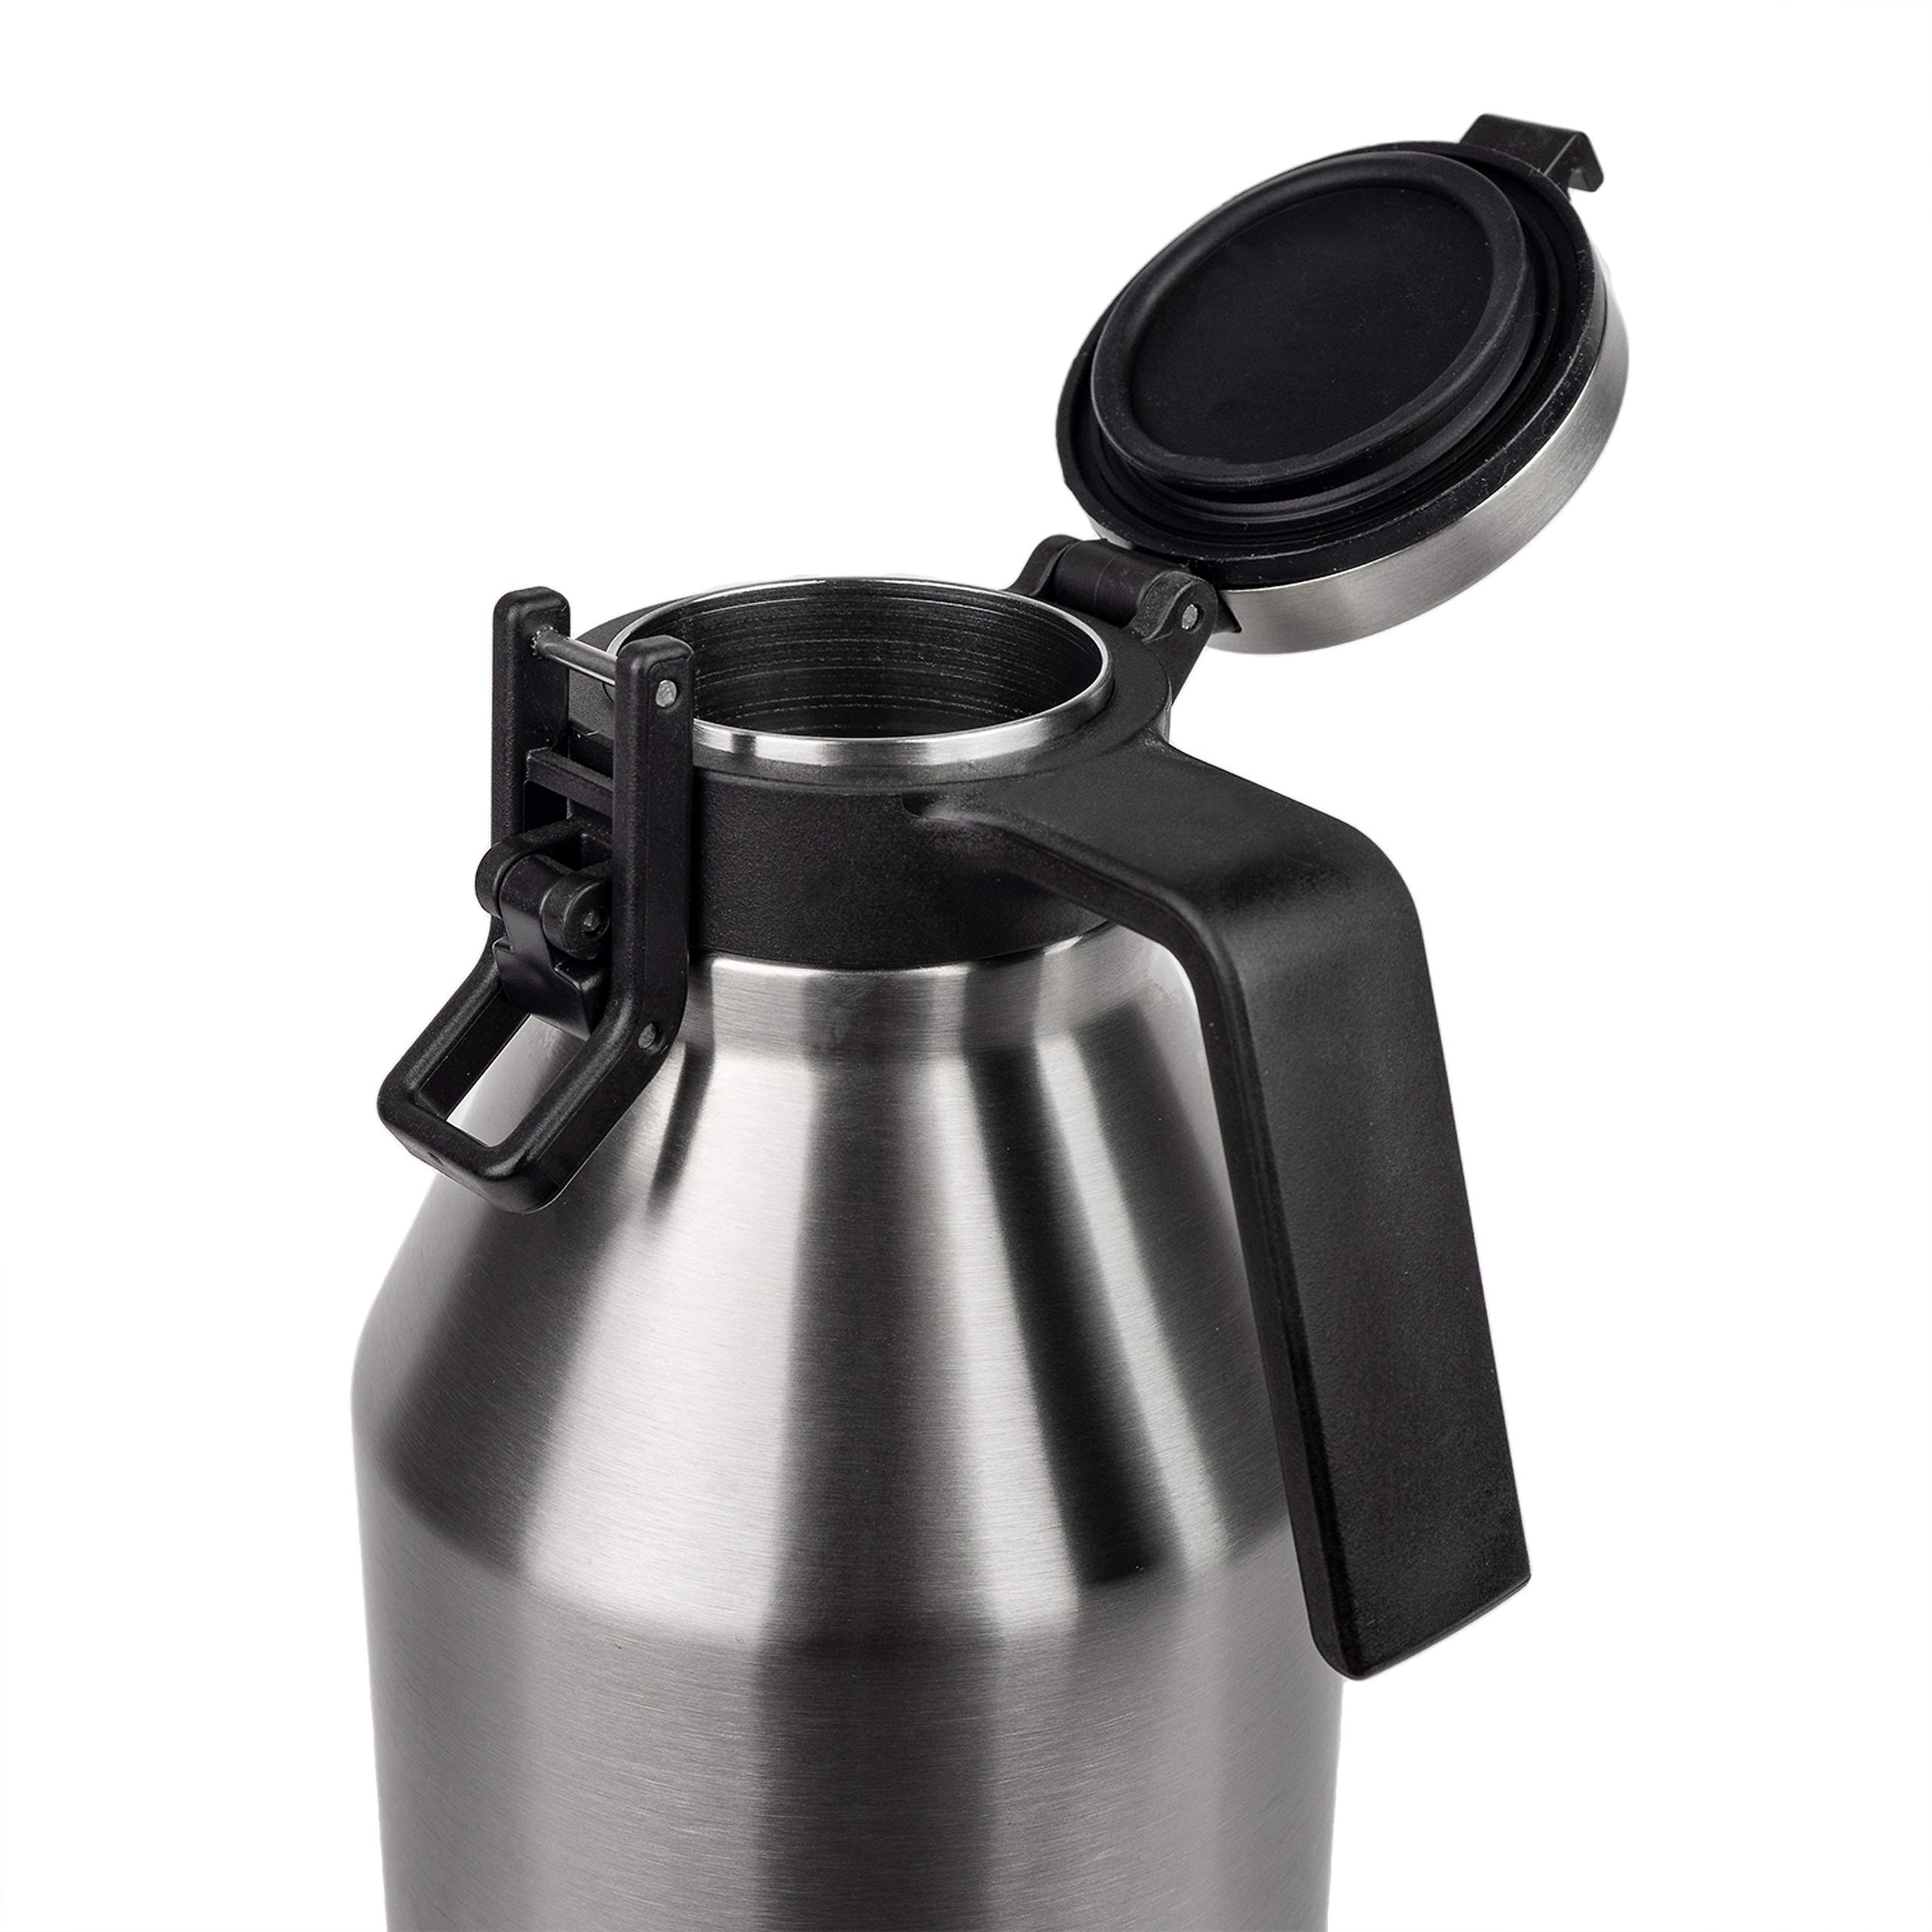 MiiR 64oz Insulated Growler for Beer - Stainless by MiiR (Image #4)